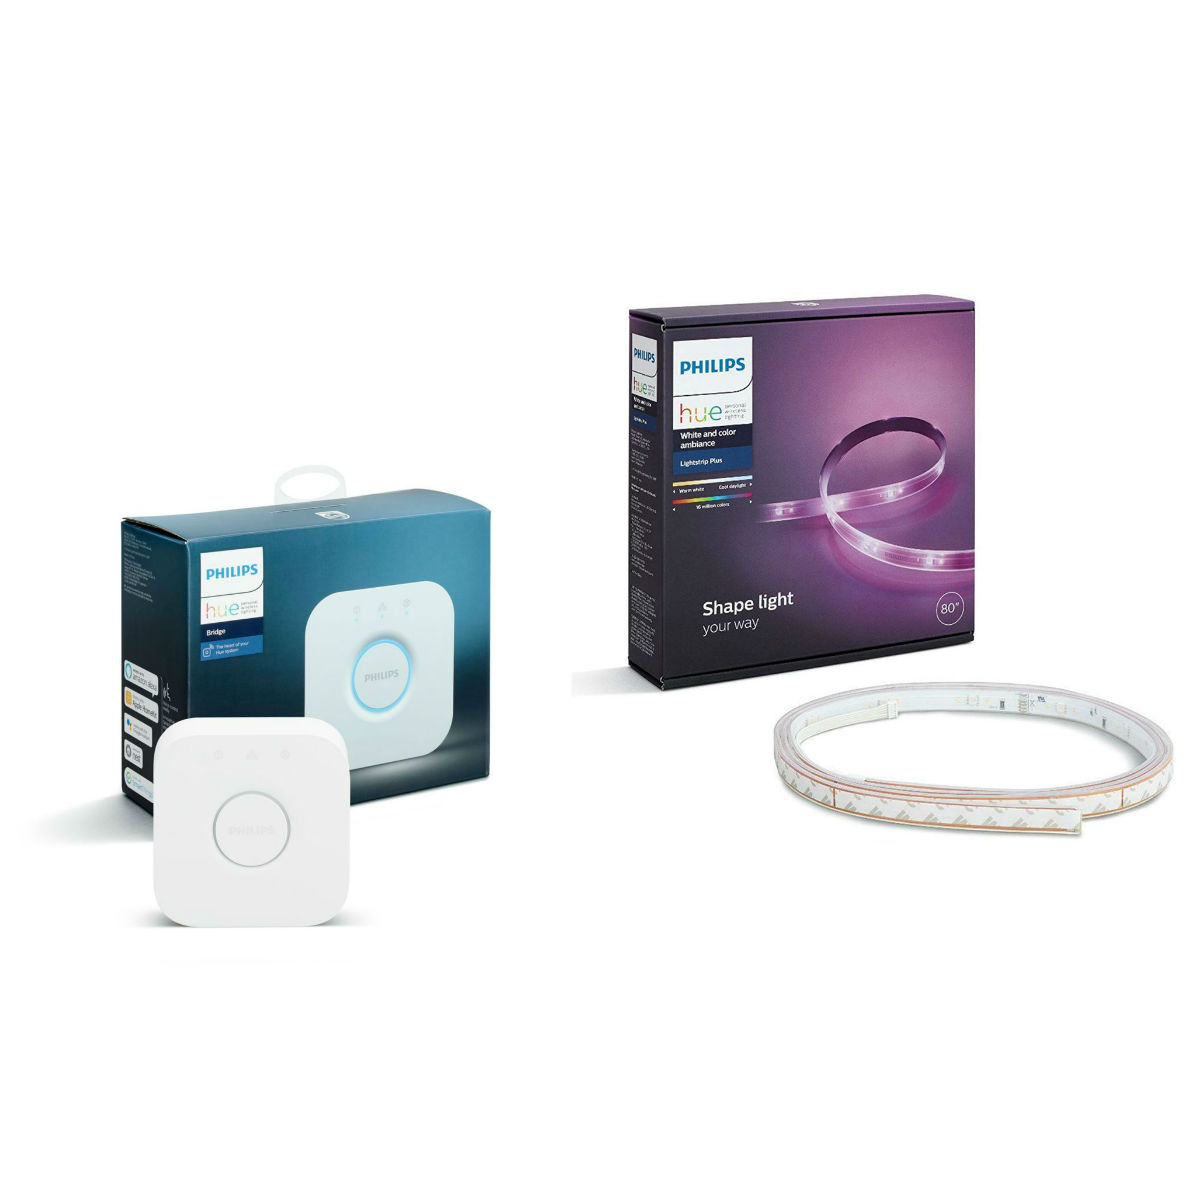 PHILIPS Bridge AppleHomeKit + Outdoor Strip 2m EU Autumn Philips HUE Color Promo